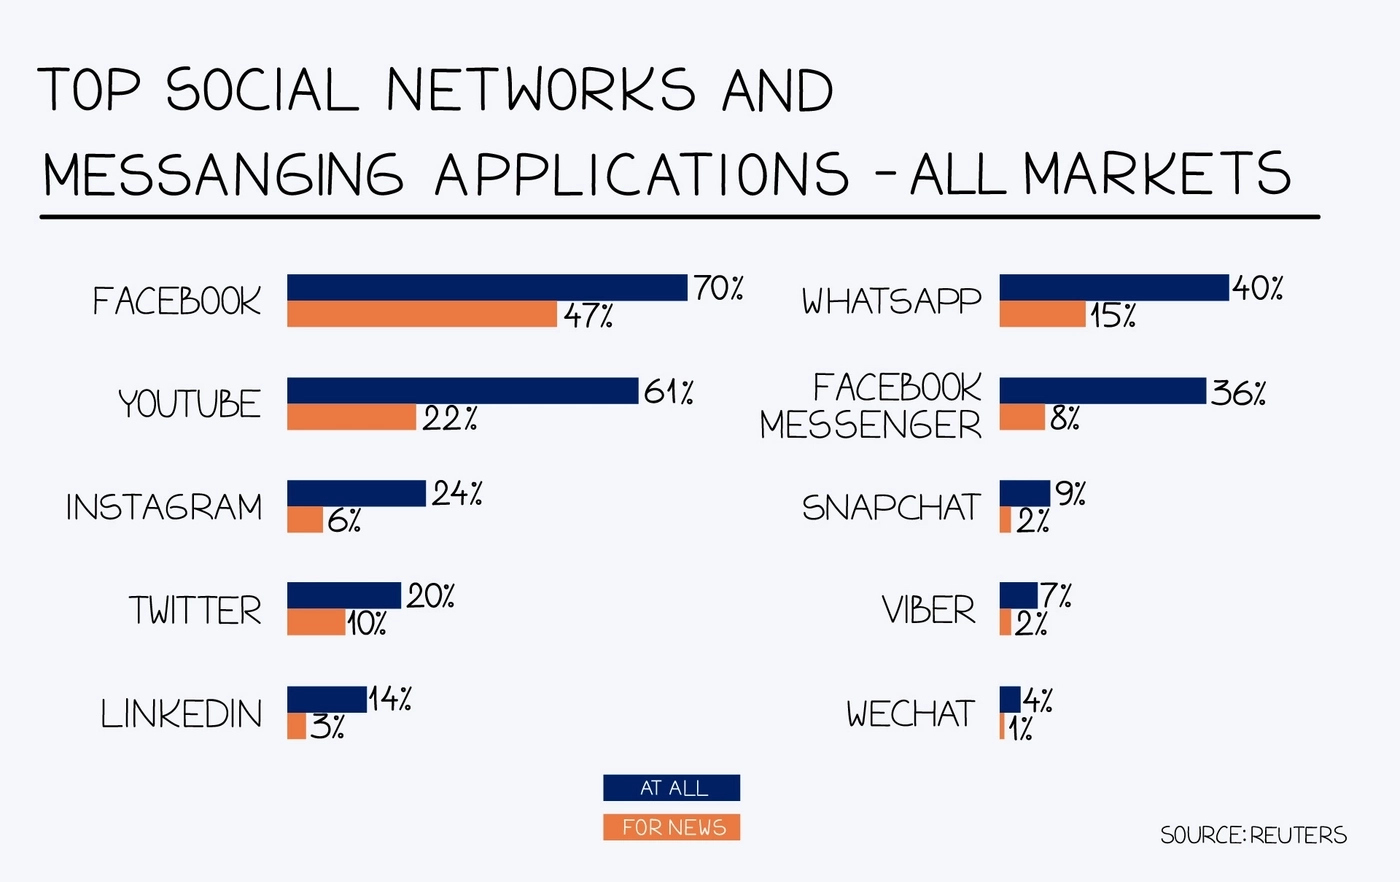 Top social networks and messaging applications